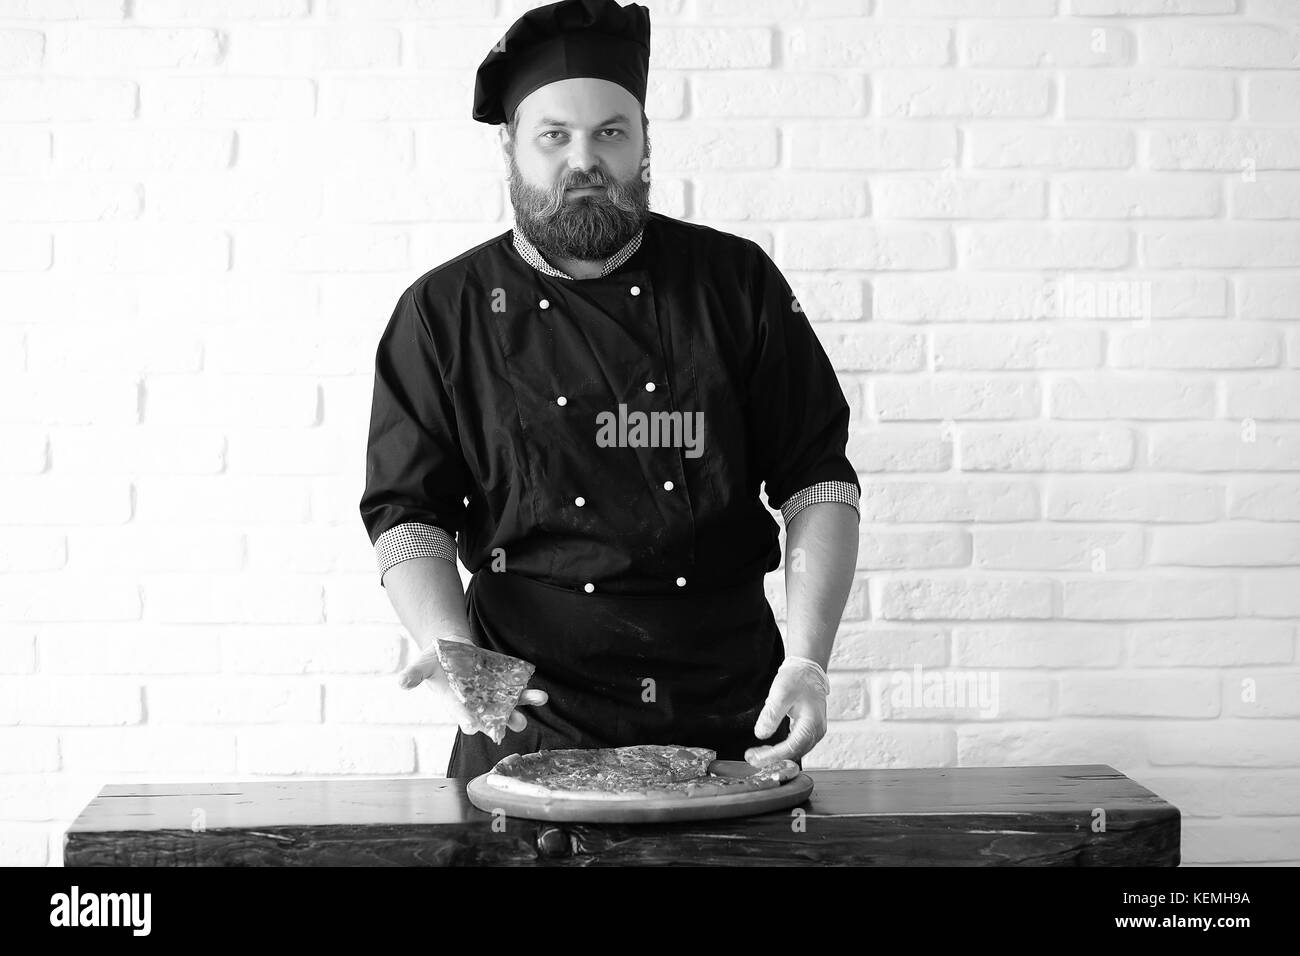 cook black and white photo - Stock Image